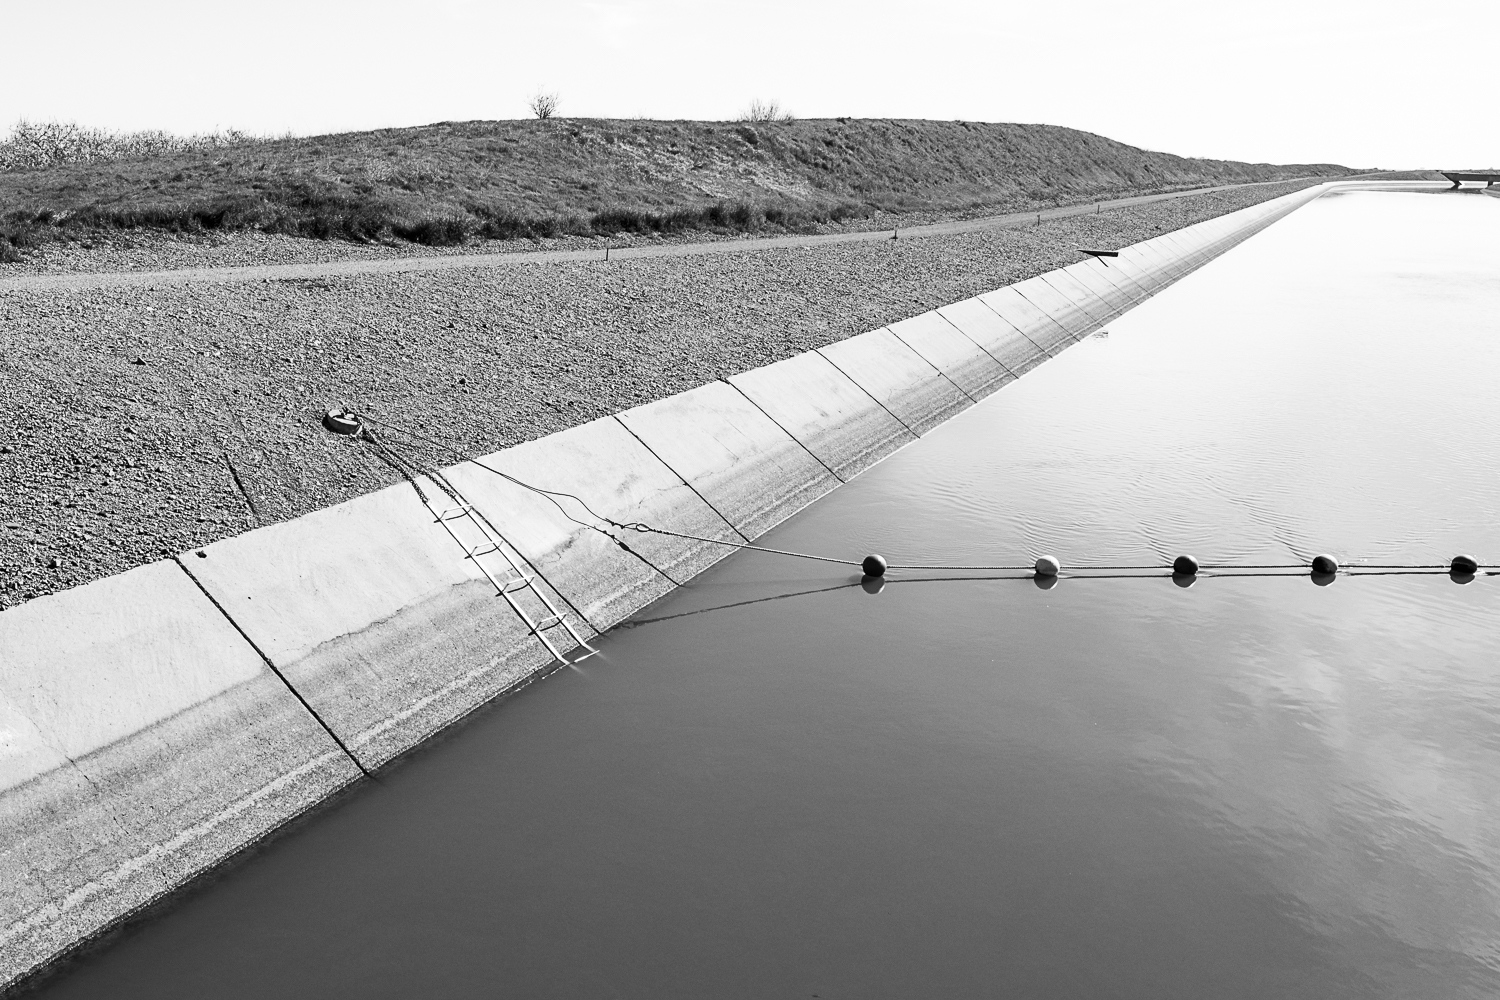 California Aqueduct near Gustine, CA 2017